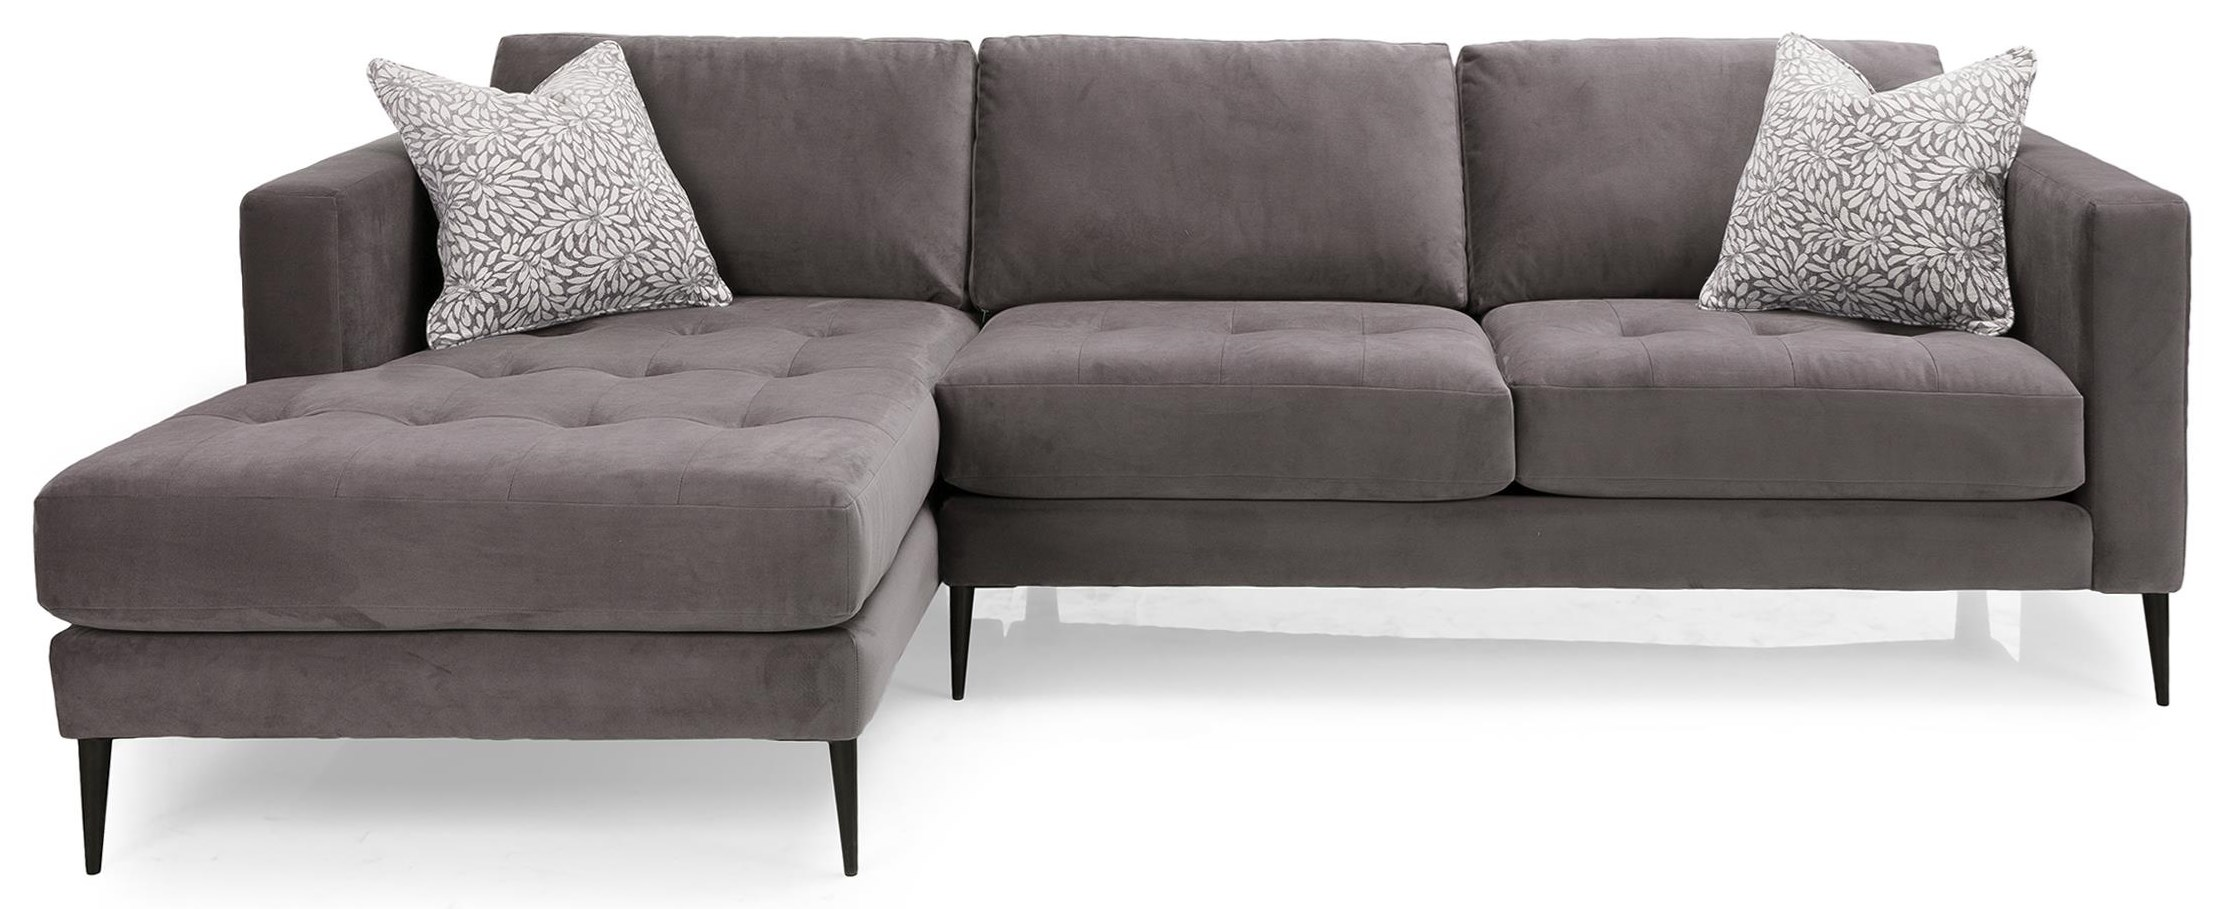 2795 2 PIECE SECTIONAL by Decor-Rest at Johnny Janosik